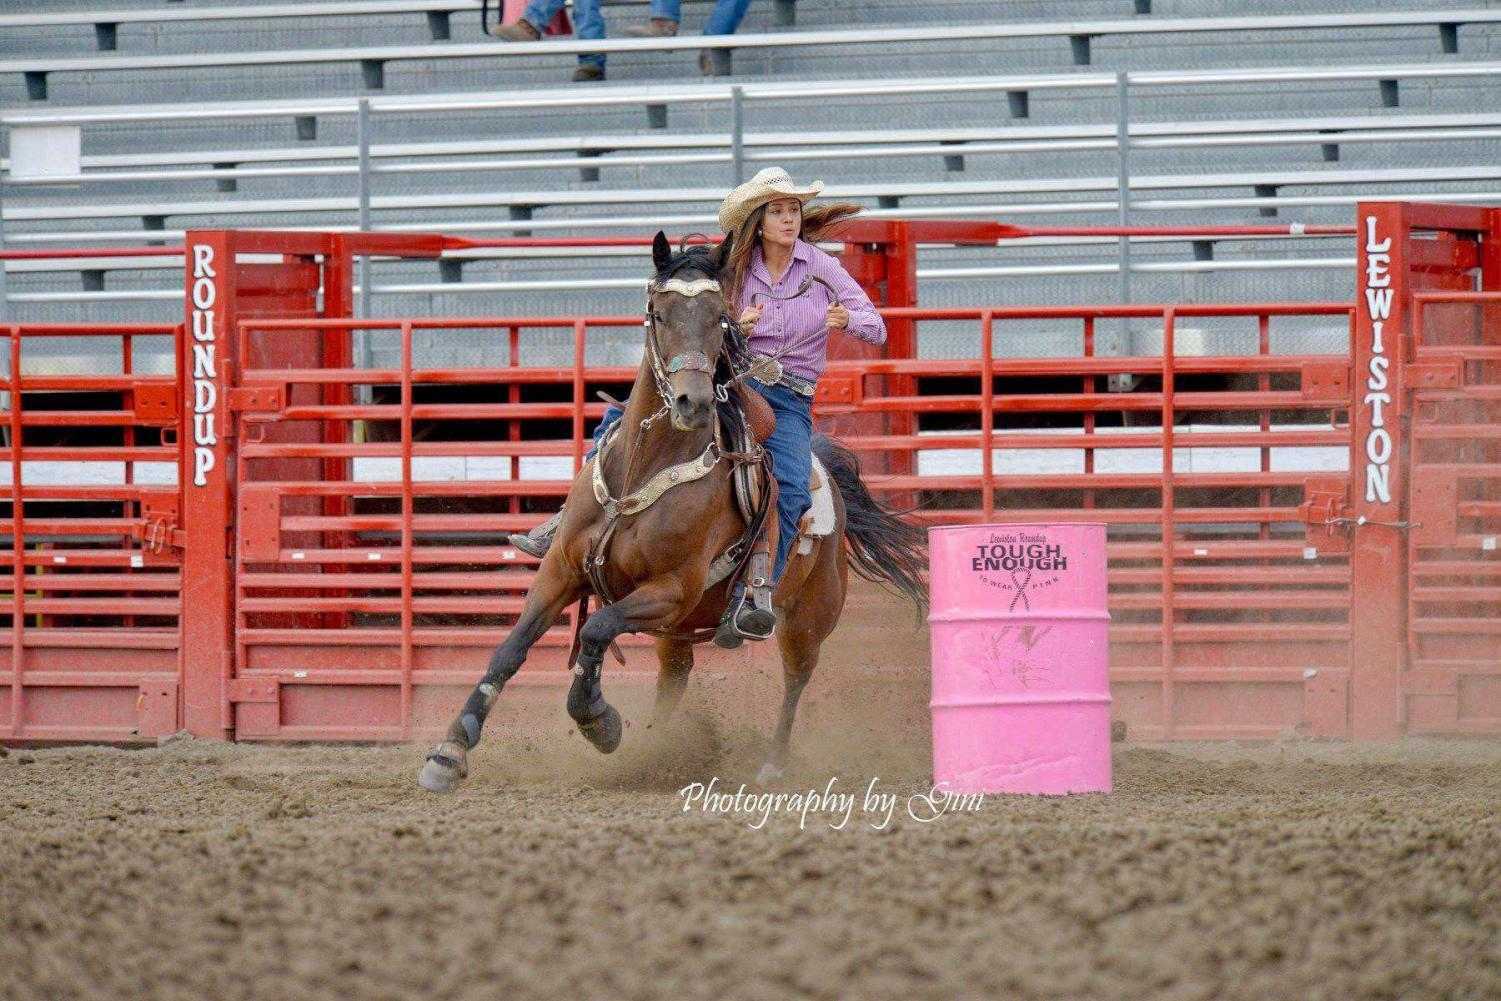 Annella Tucker races around the pink barrels at Lewiston Roundup tryouts.